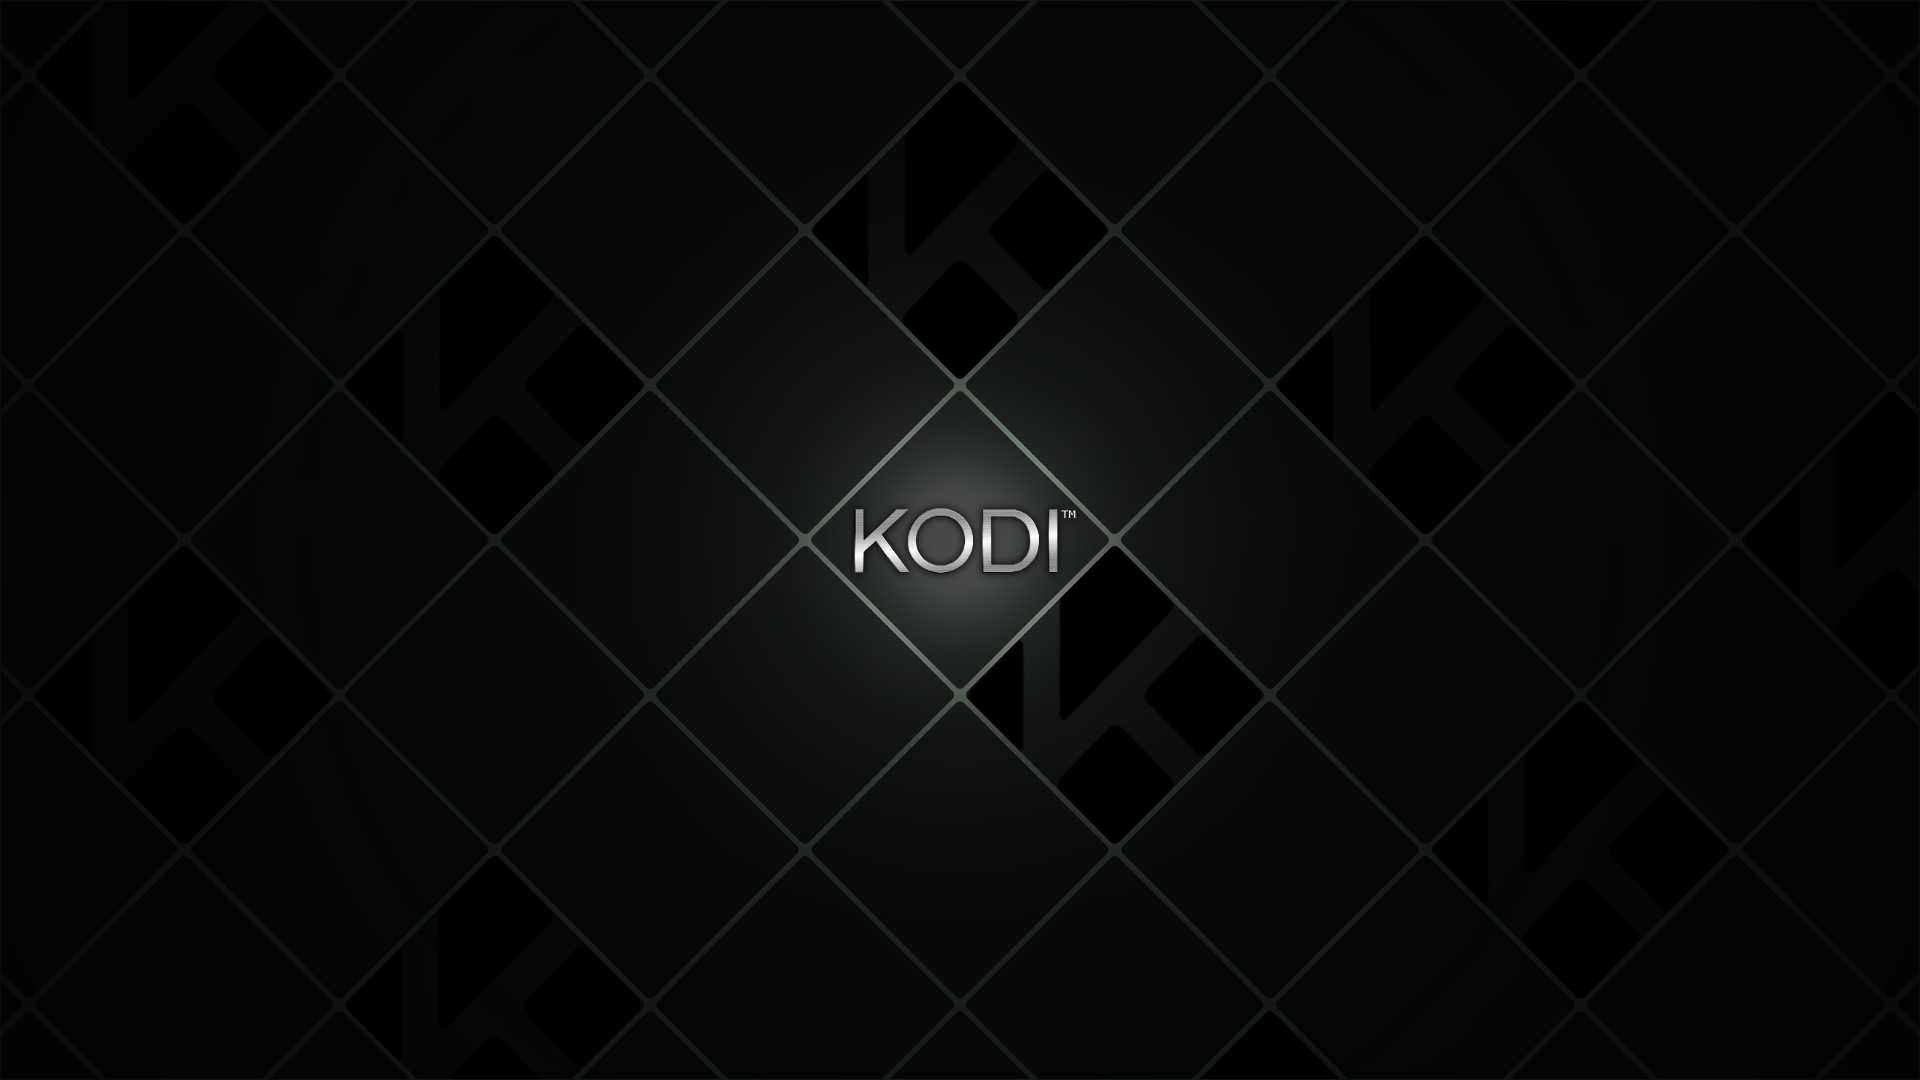 how to tell what version of kodi i am using